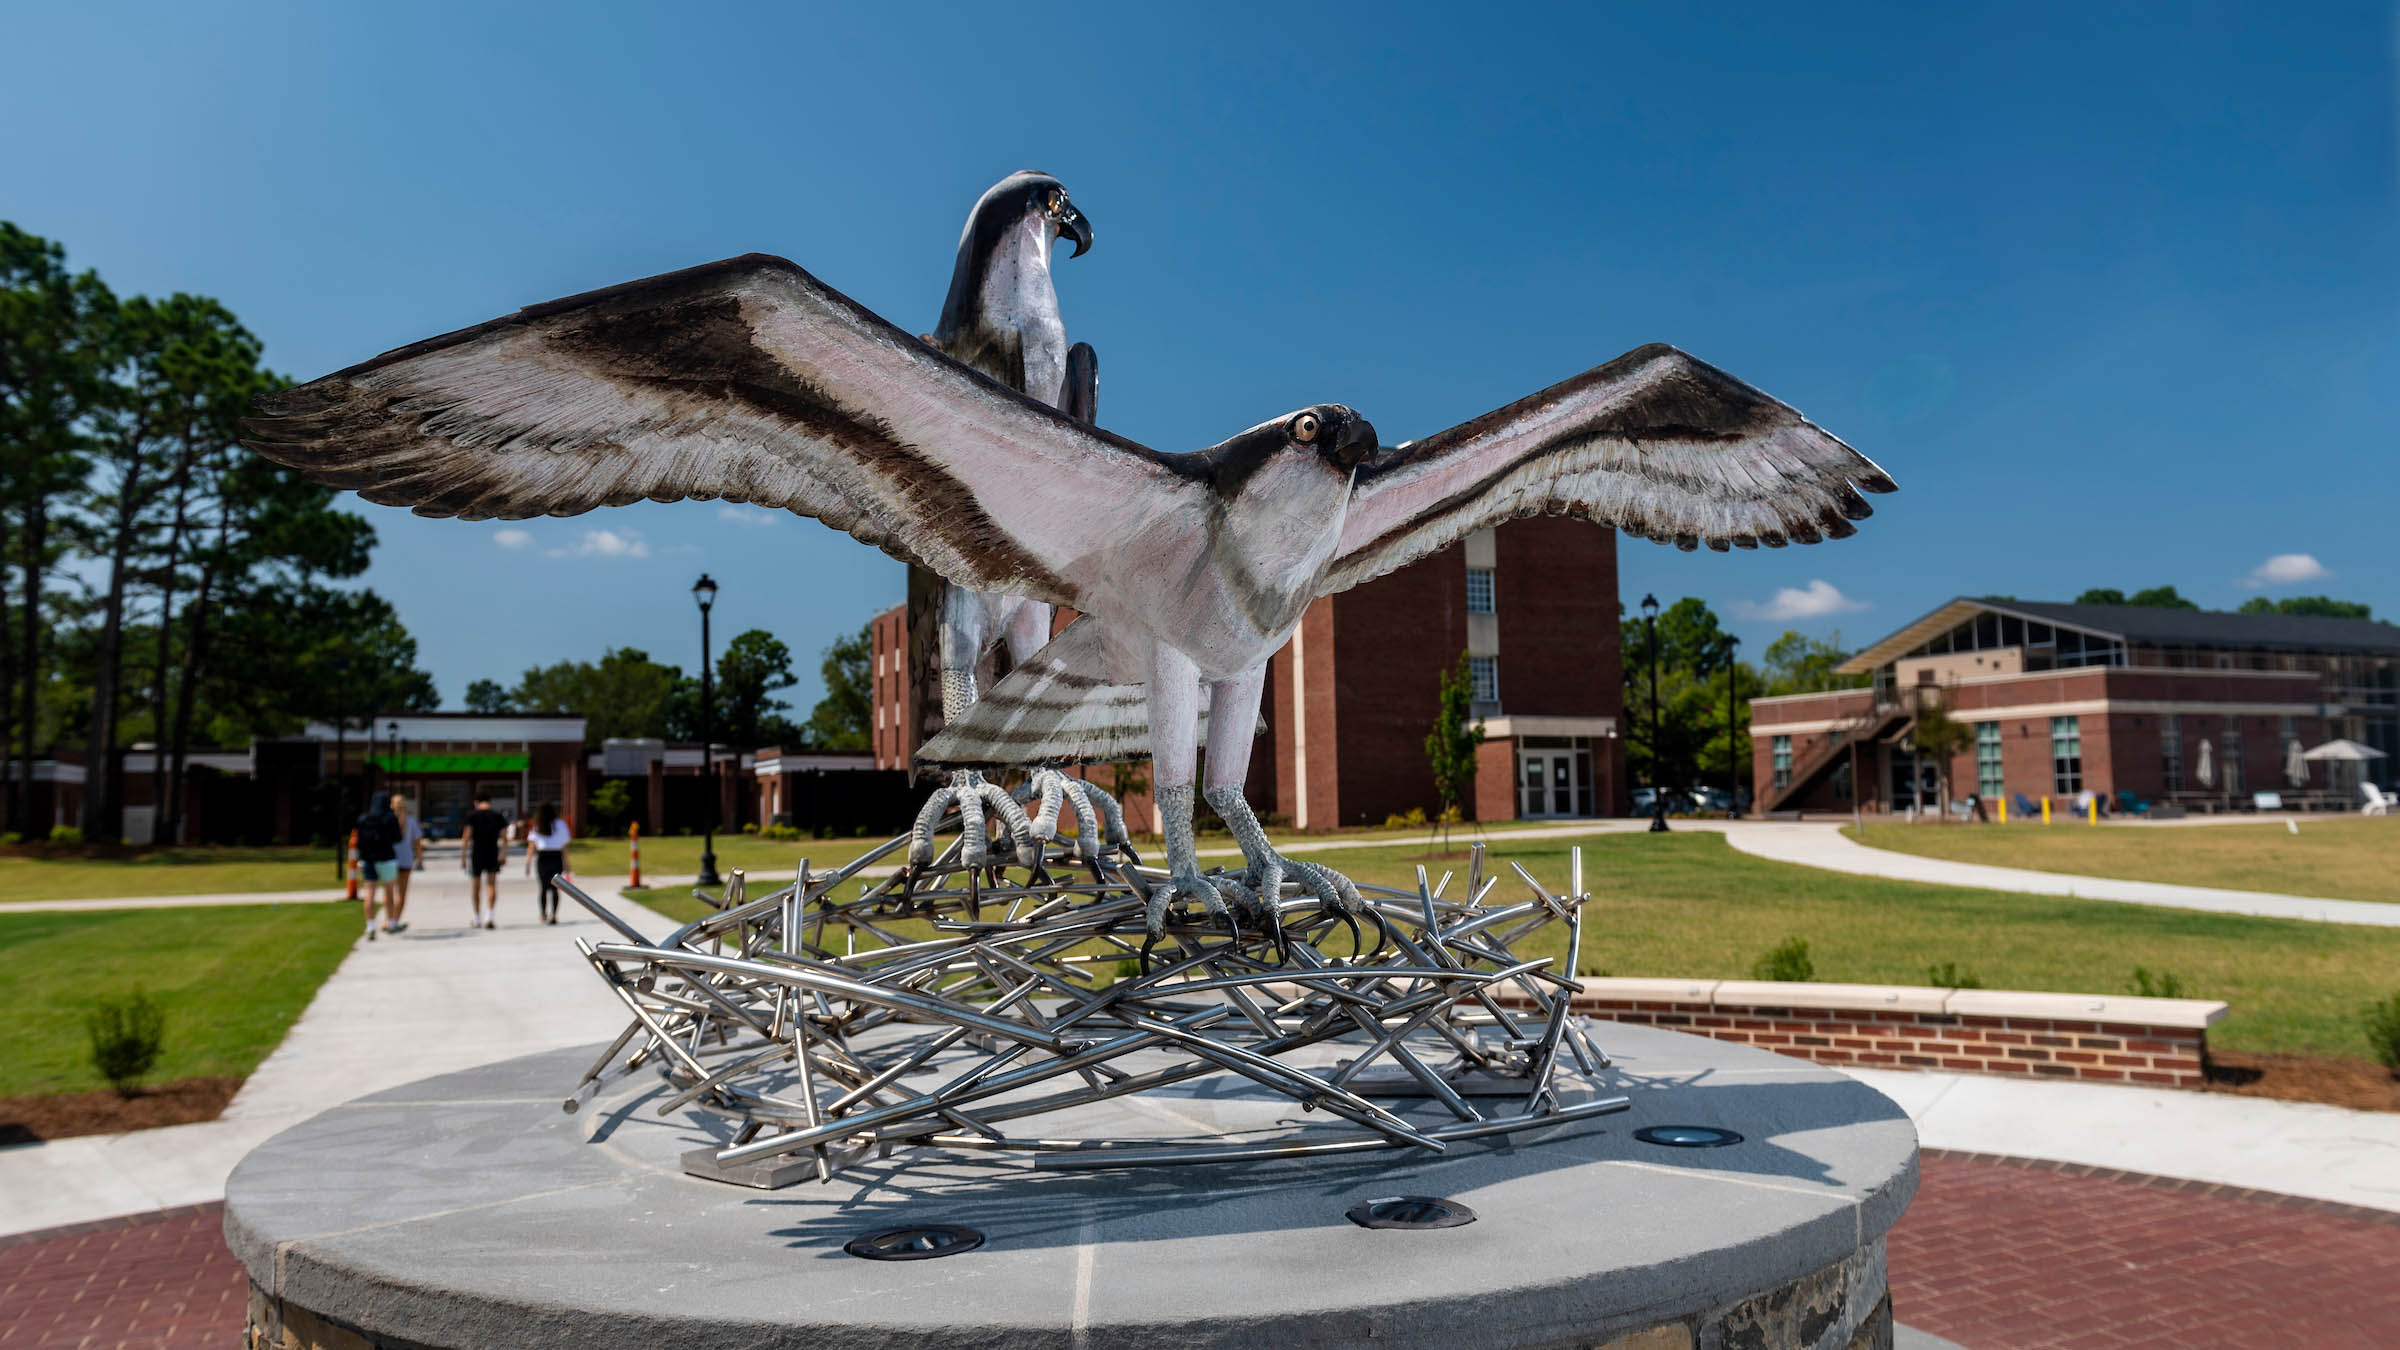 A fledgling Seahawk prepares for its first flight from the nest as its mother looks on in this sculpture by local artist Dumay Gorham.